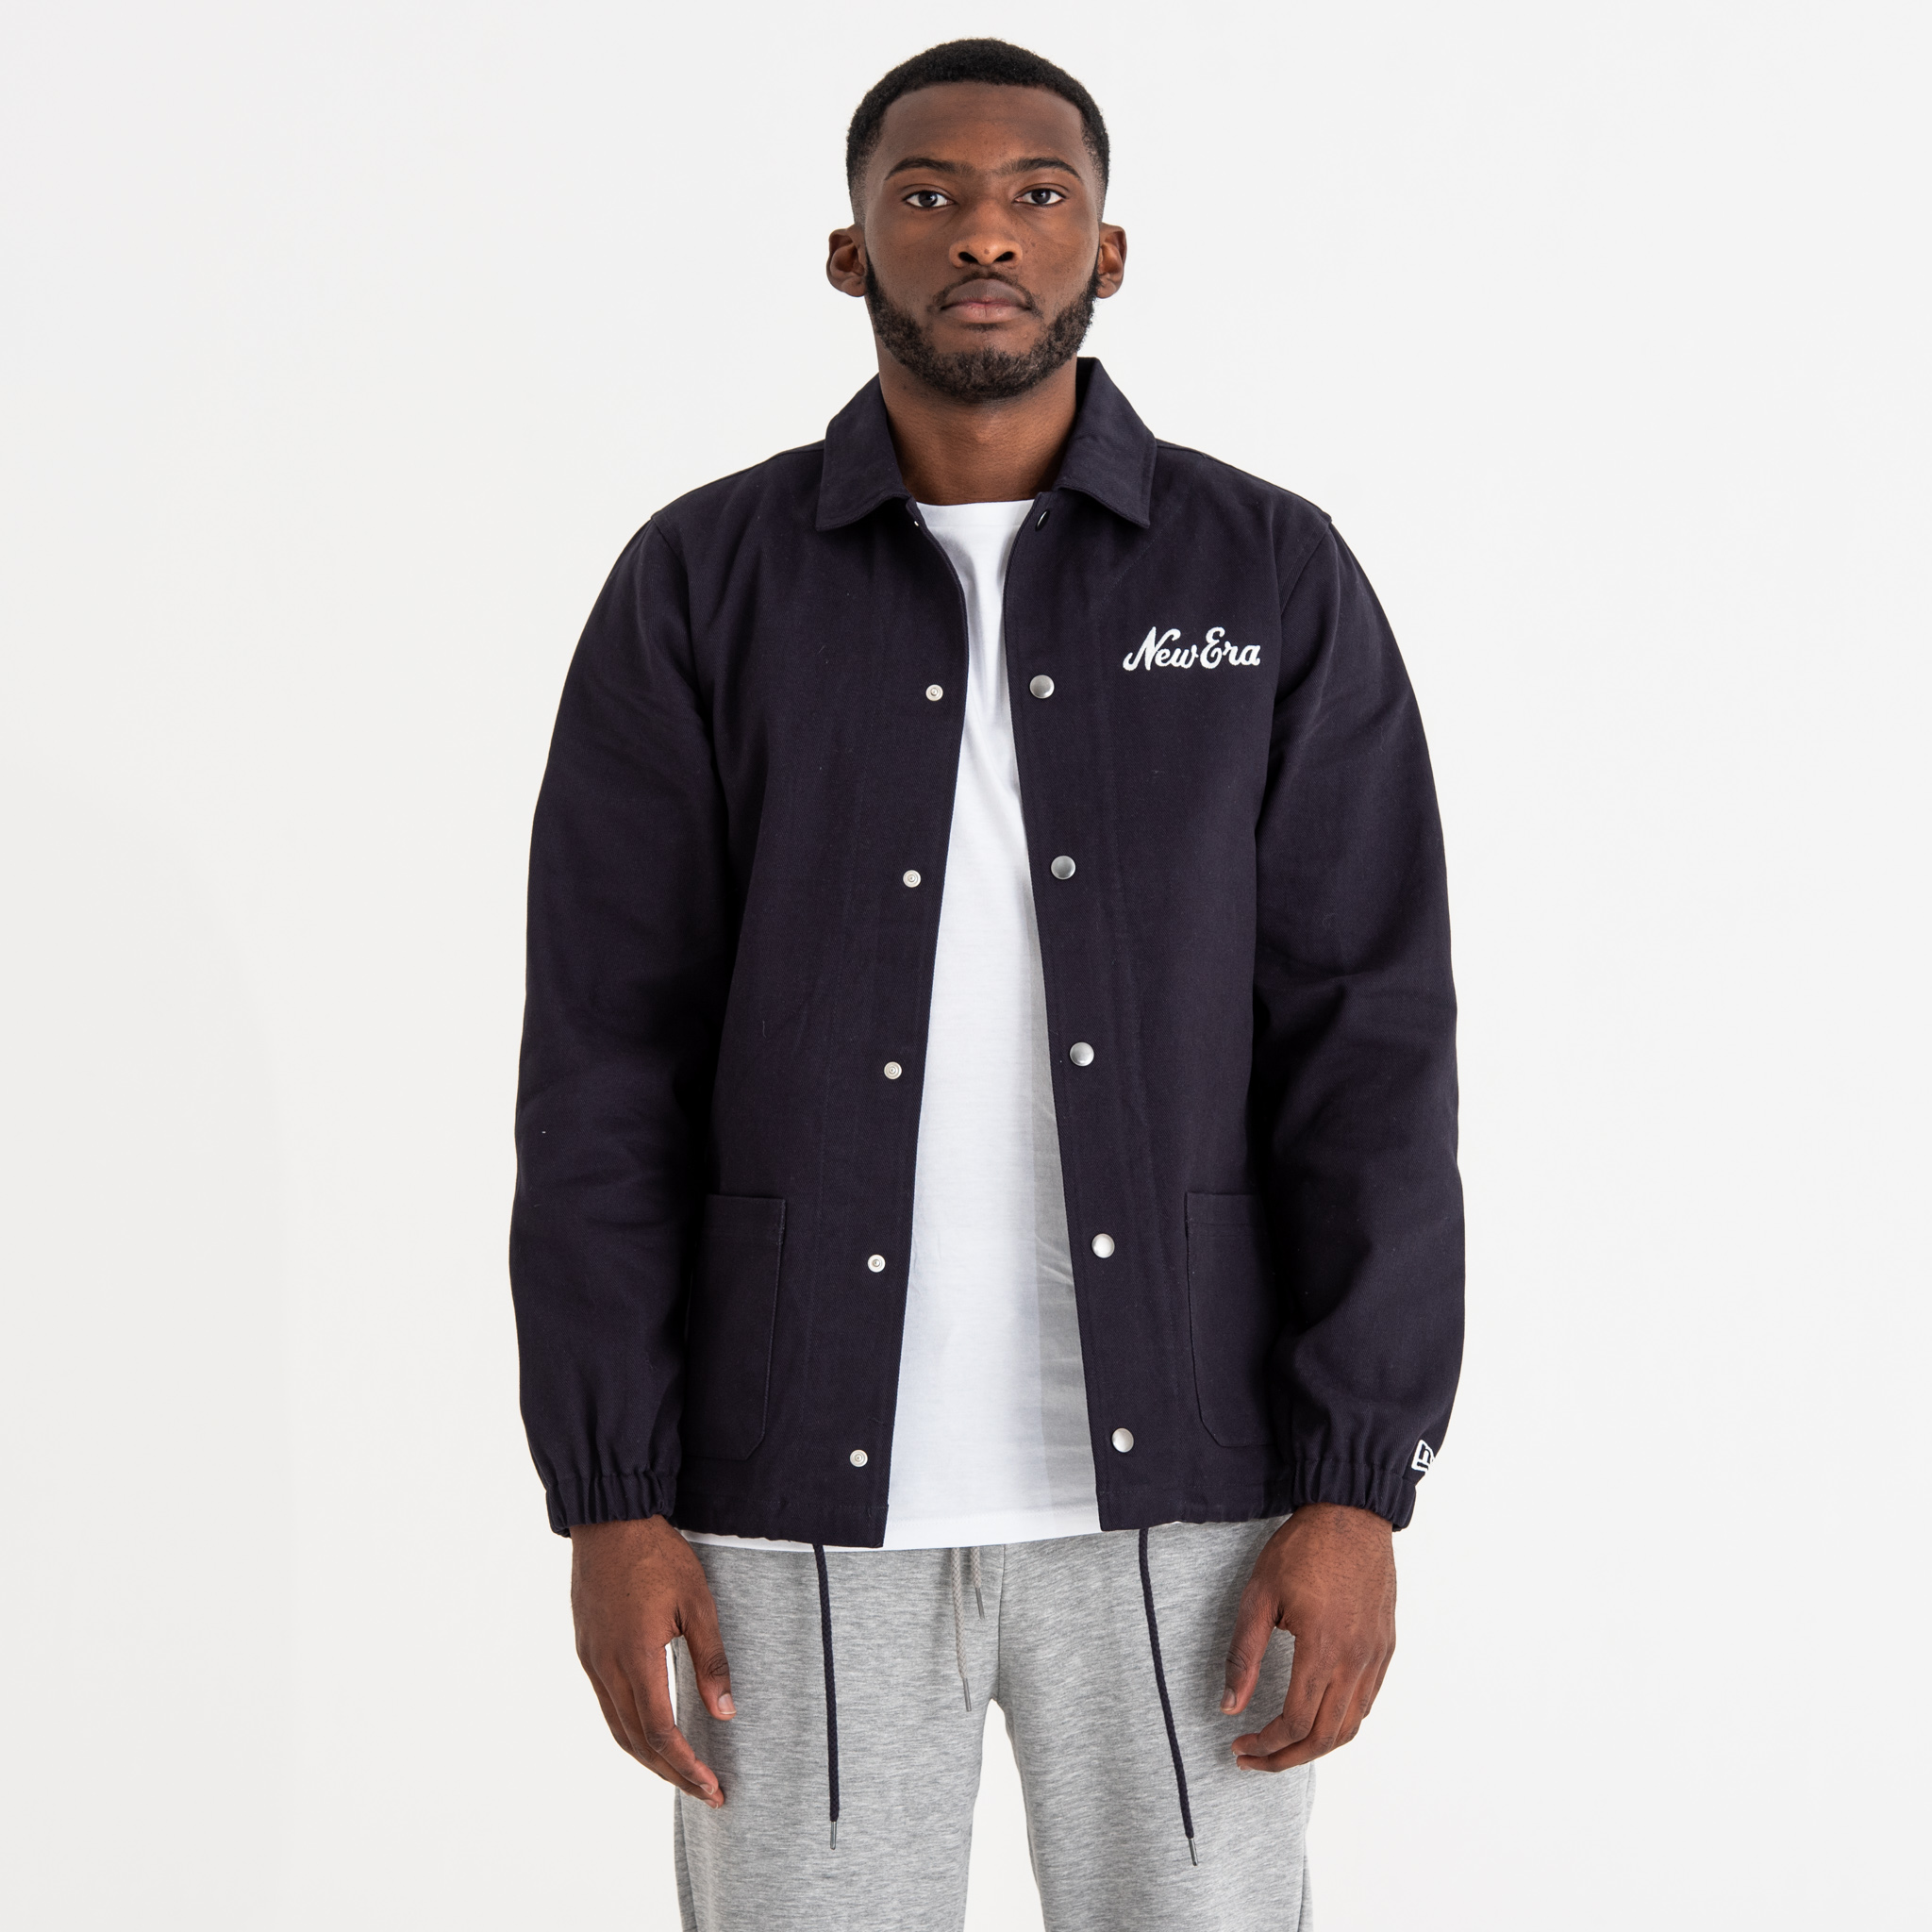 New Era Navy Coach Jacket e8403facf